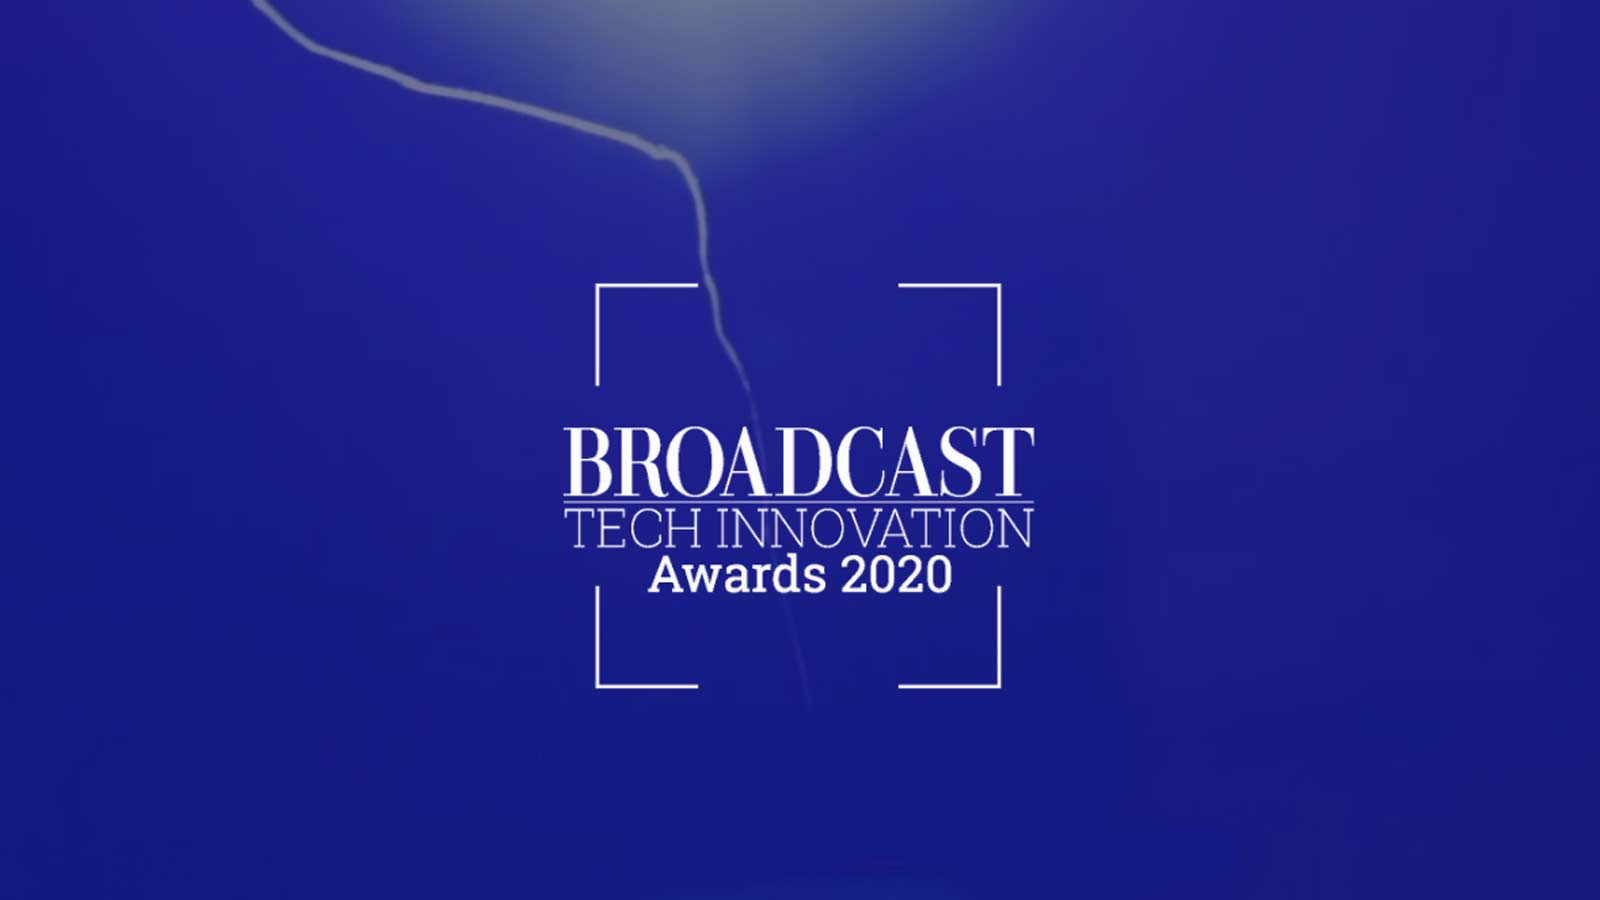 dock10 shortlisted for three Broadcast Tech Innovation Awards 2020